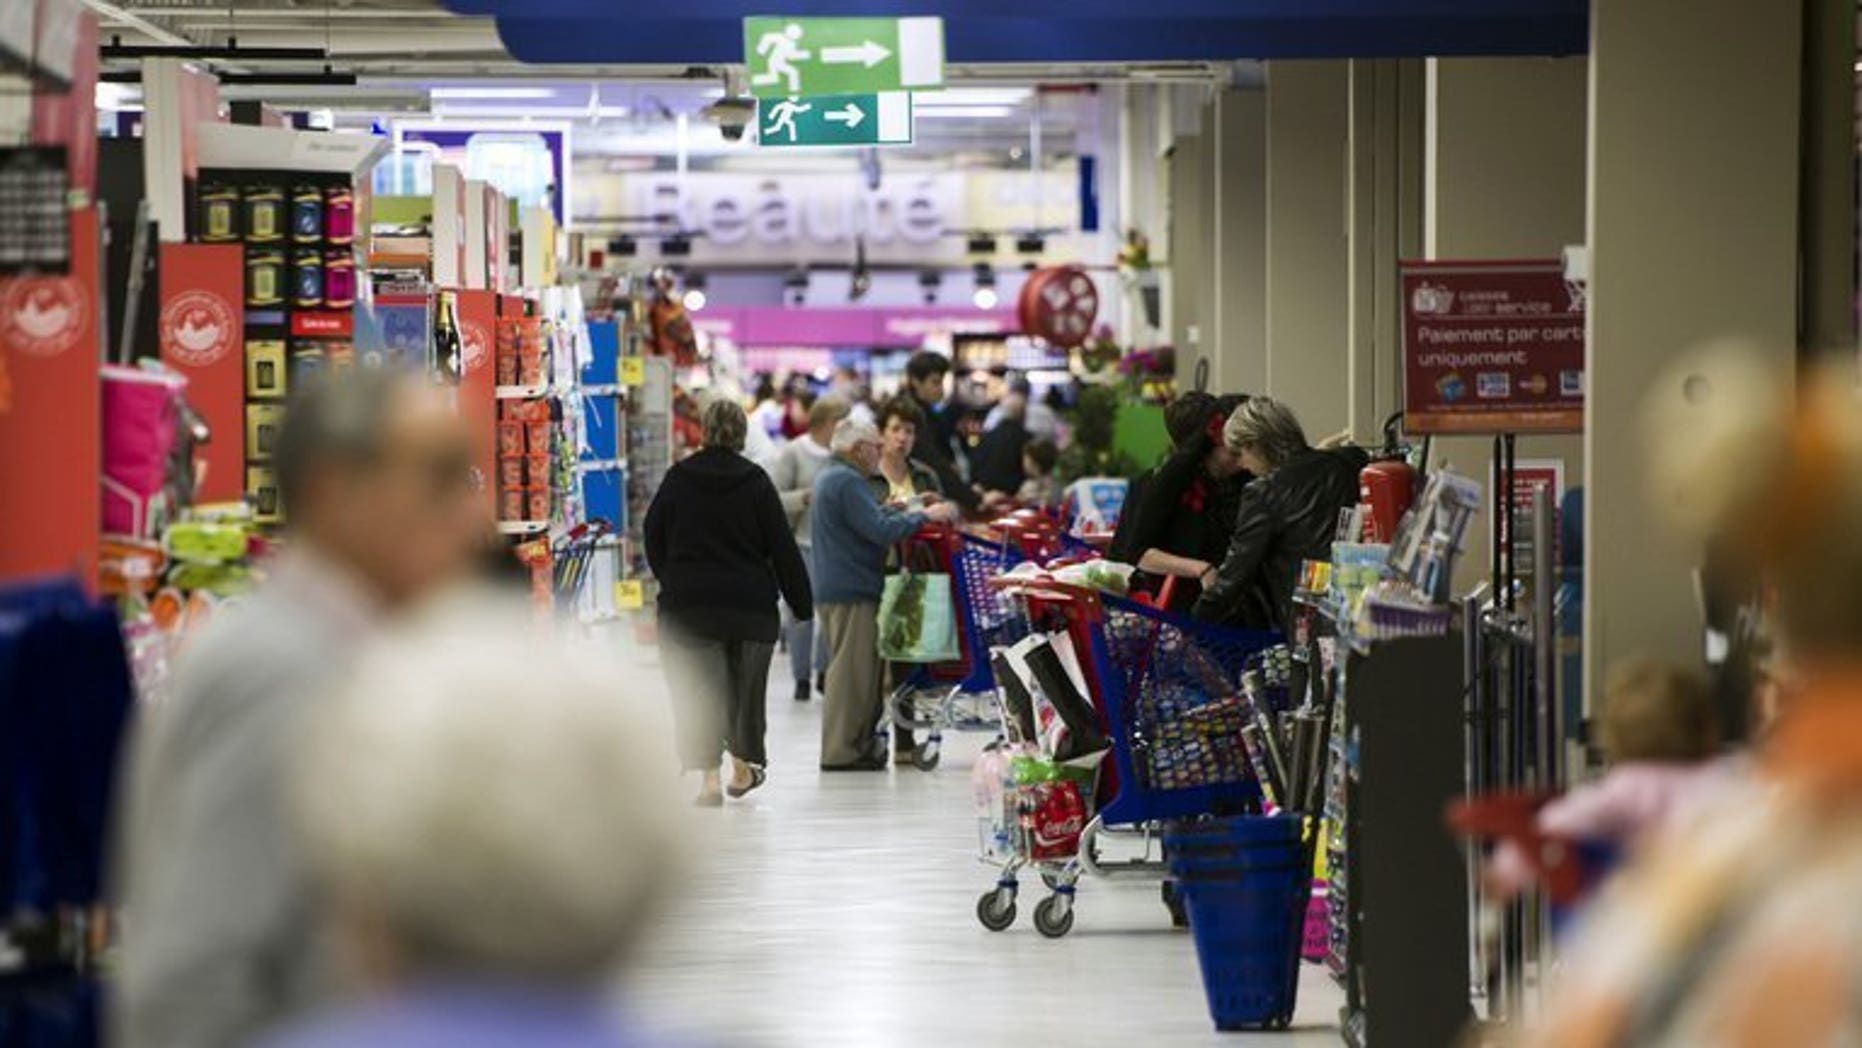 Consumer prices in Canada rose 0.7 percent in the 12 months to May, as higher food and shelter costs were partly offset by lower transportation costs, the government statistical agency said Friday.